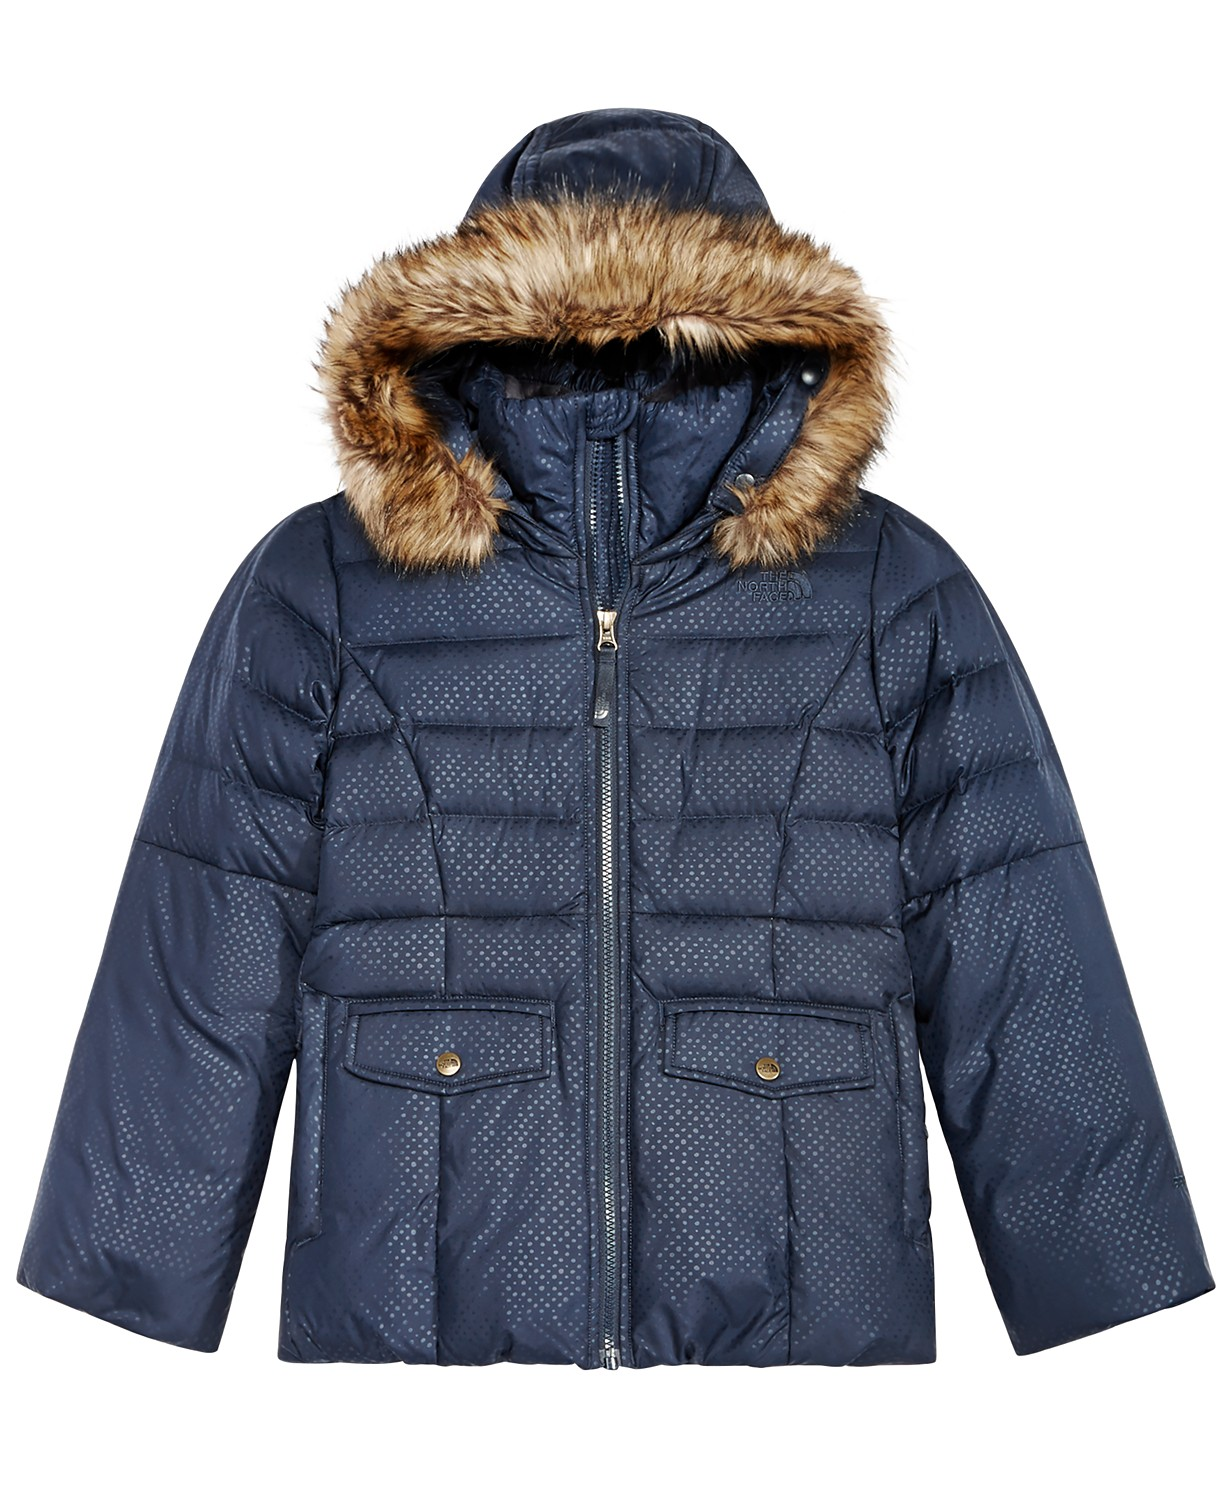 b885dea6 UPDATE: SOLD OUT!! Macy's has select The North Face coats & jackets ...